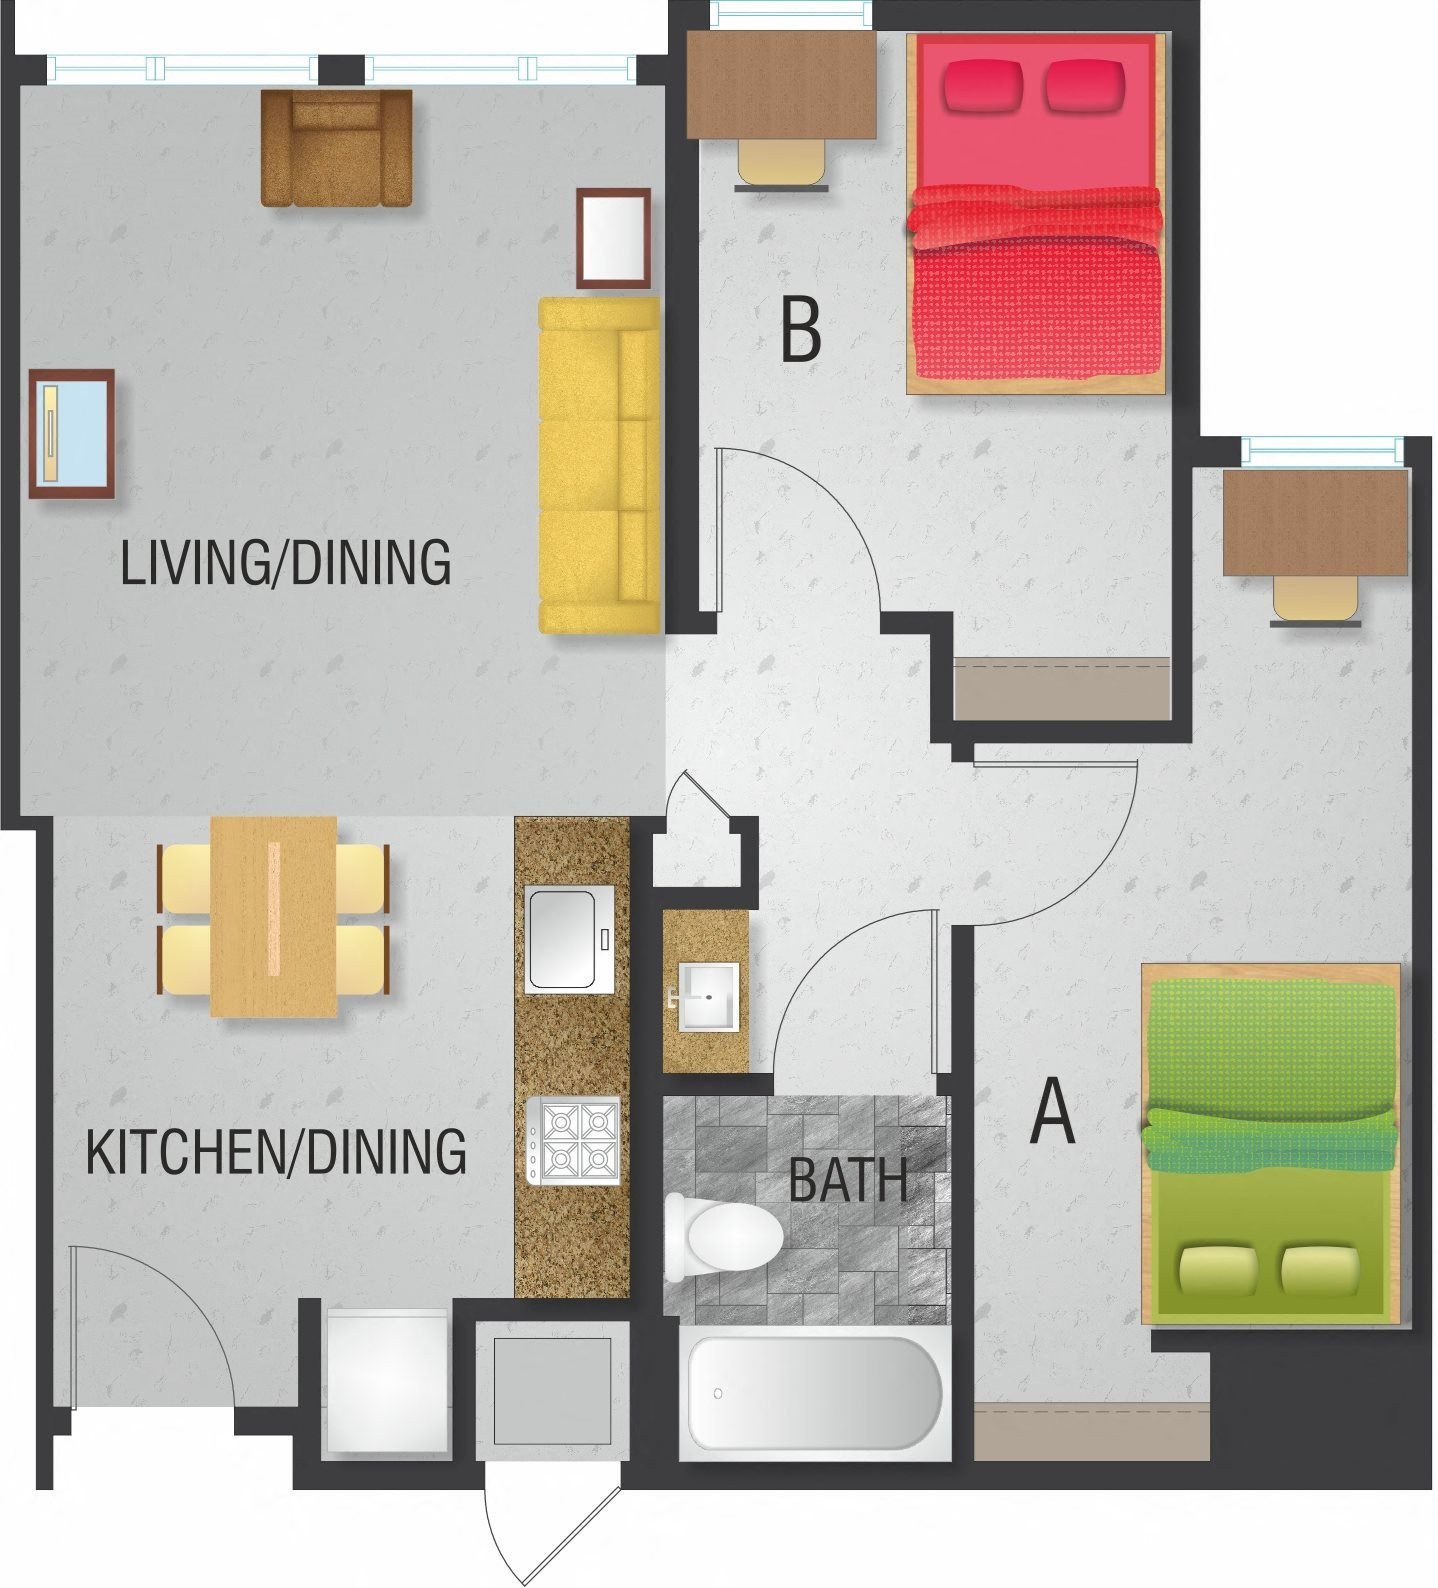 2 Bedroom  1 Bath Floor Plan 1. Floor Plans of The Enclave at 8700 in College Park  MD